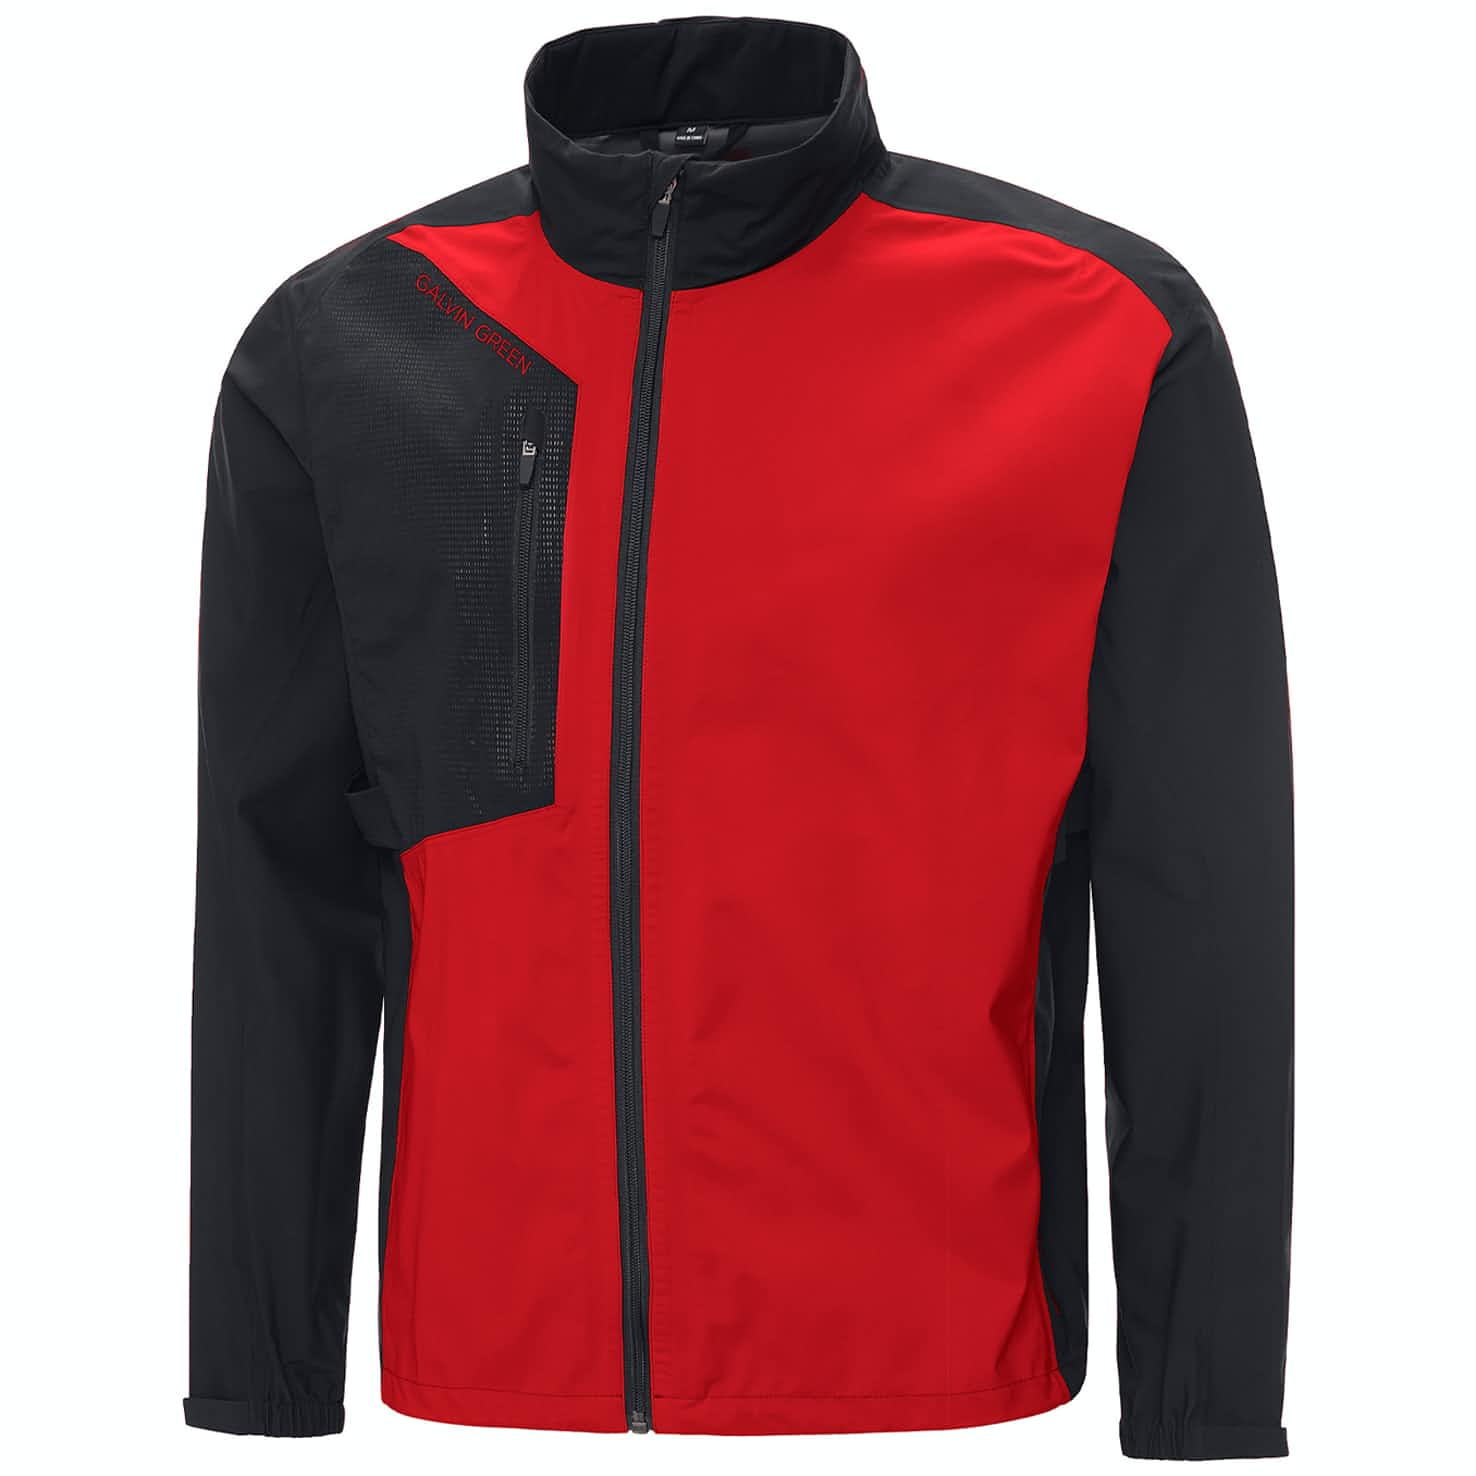 Andres Gore-Tex Stretch Jacket Black/Red - 2019